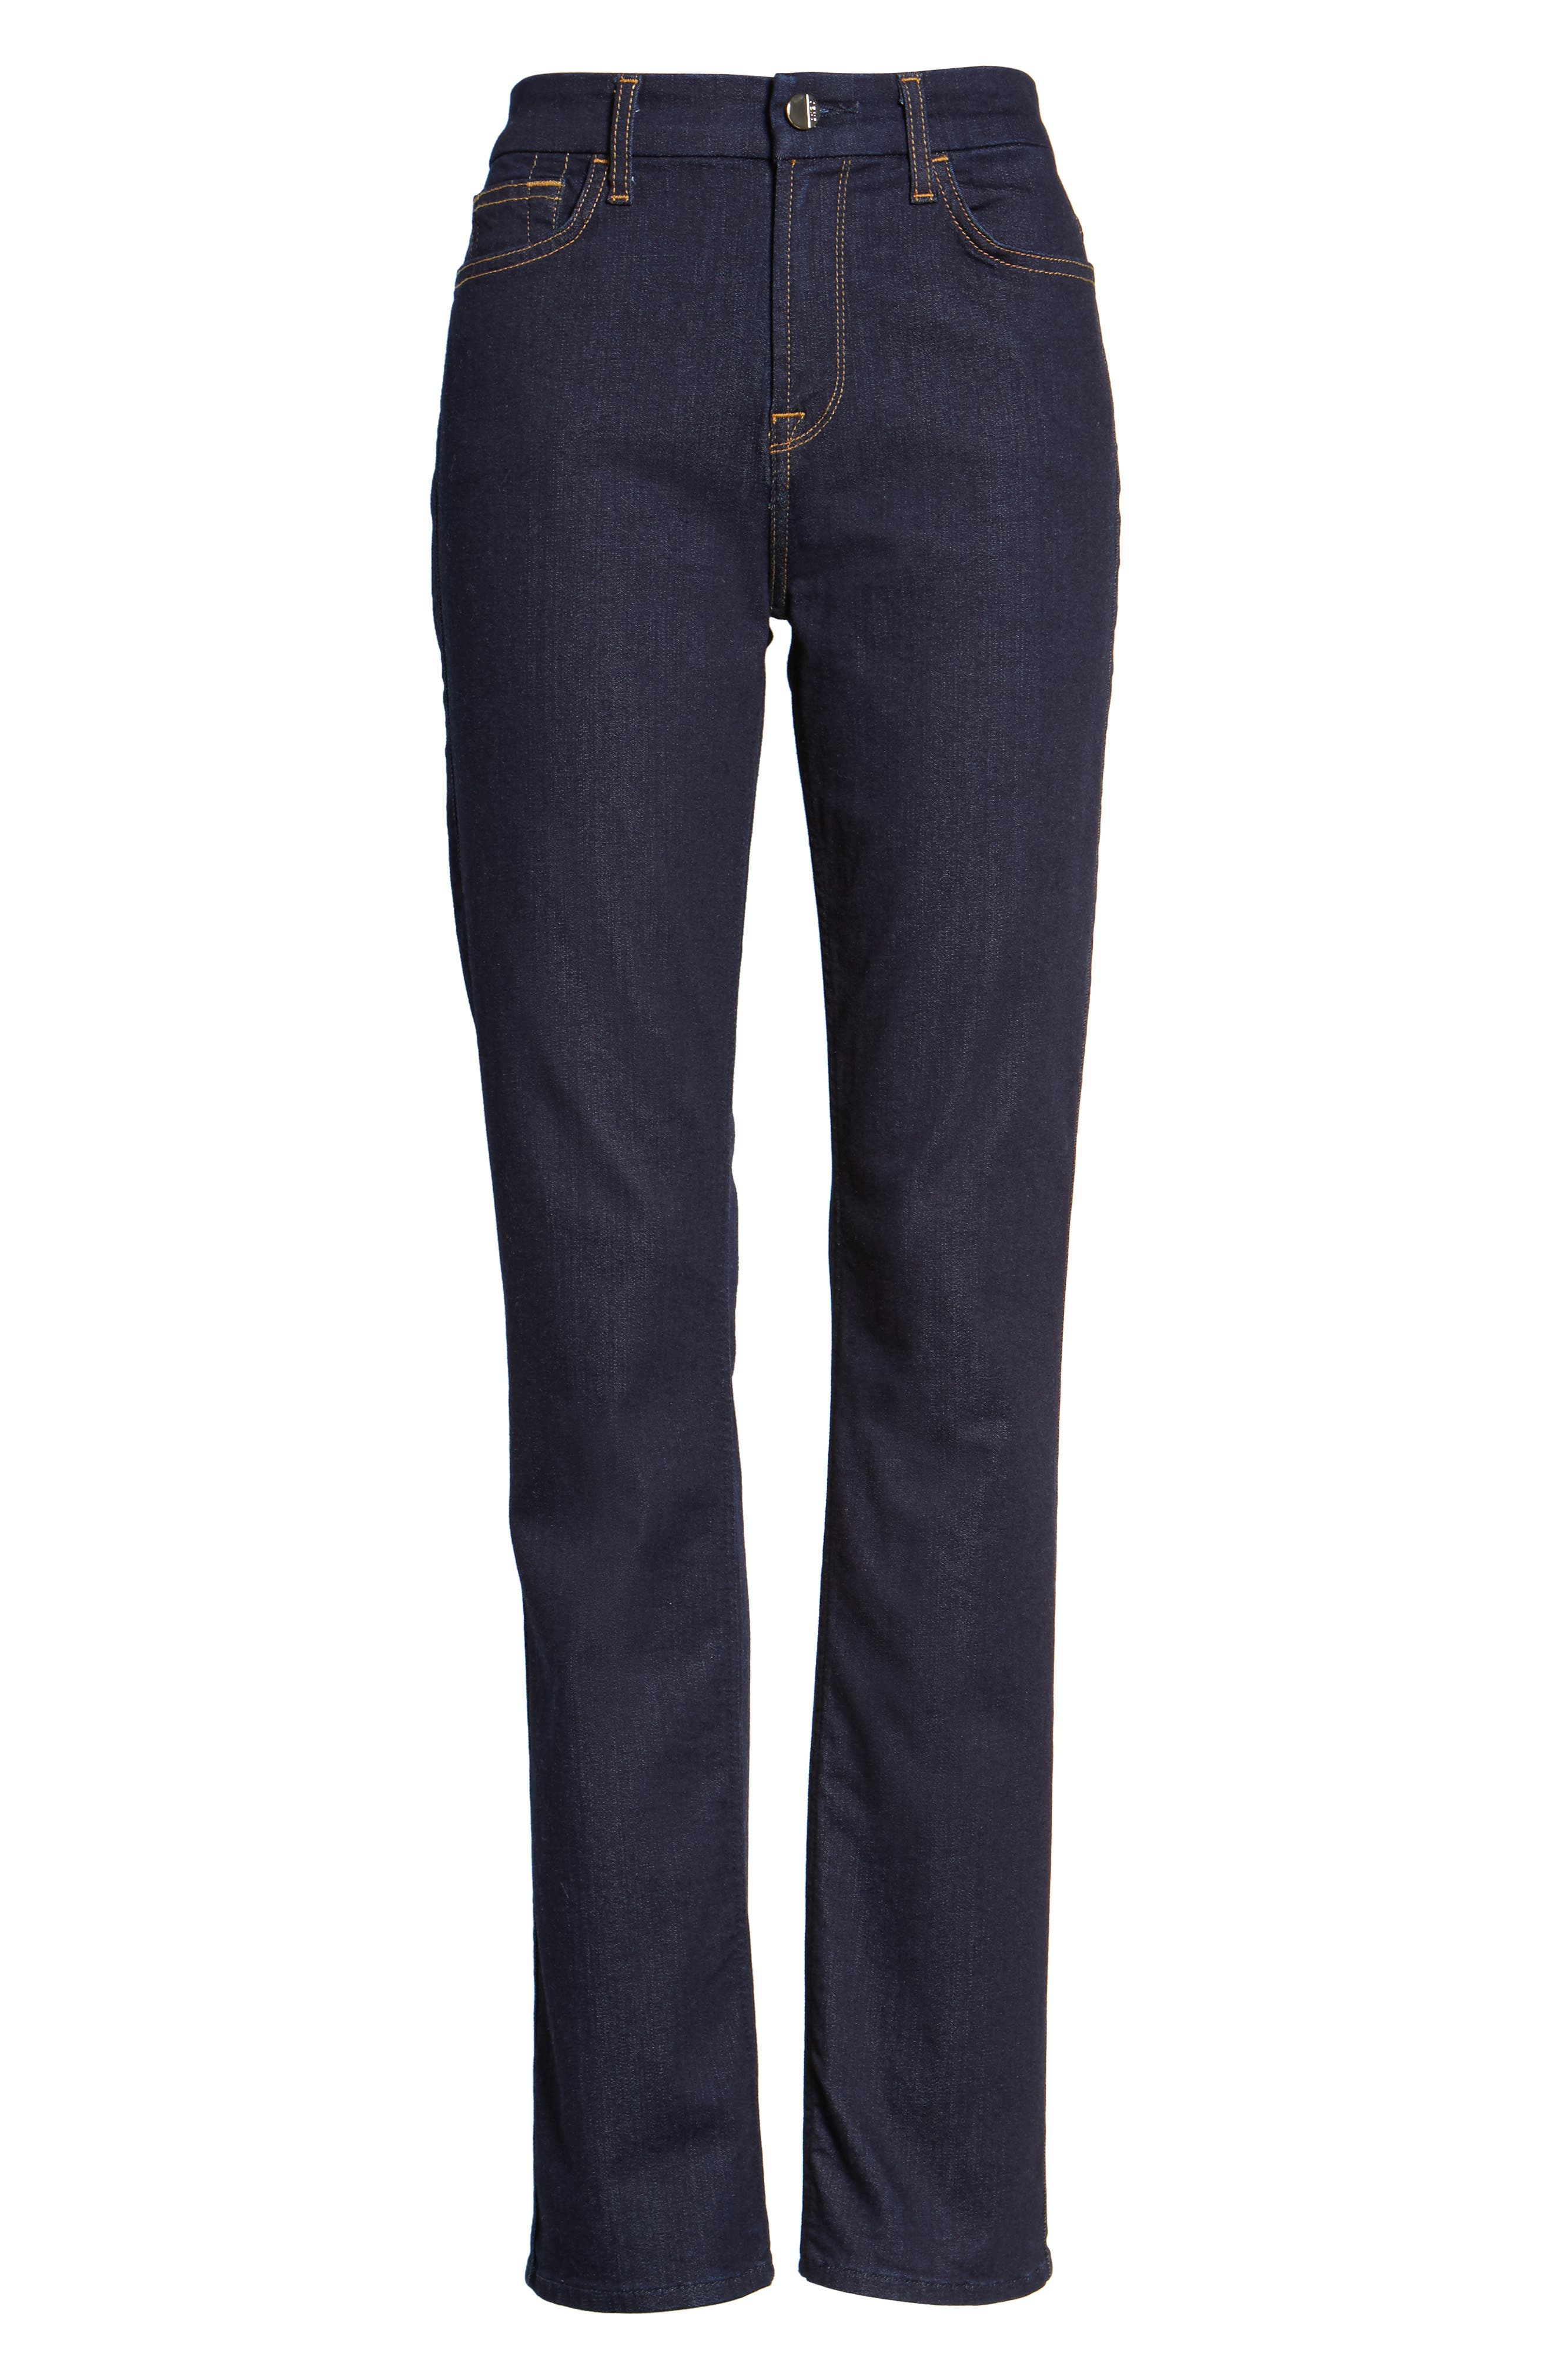 Stretch Slim Straight Leg Jeans,                             Alternate thumbnail 6, color,                             403